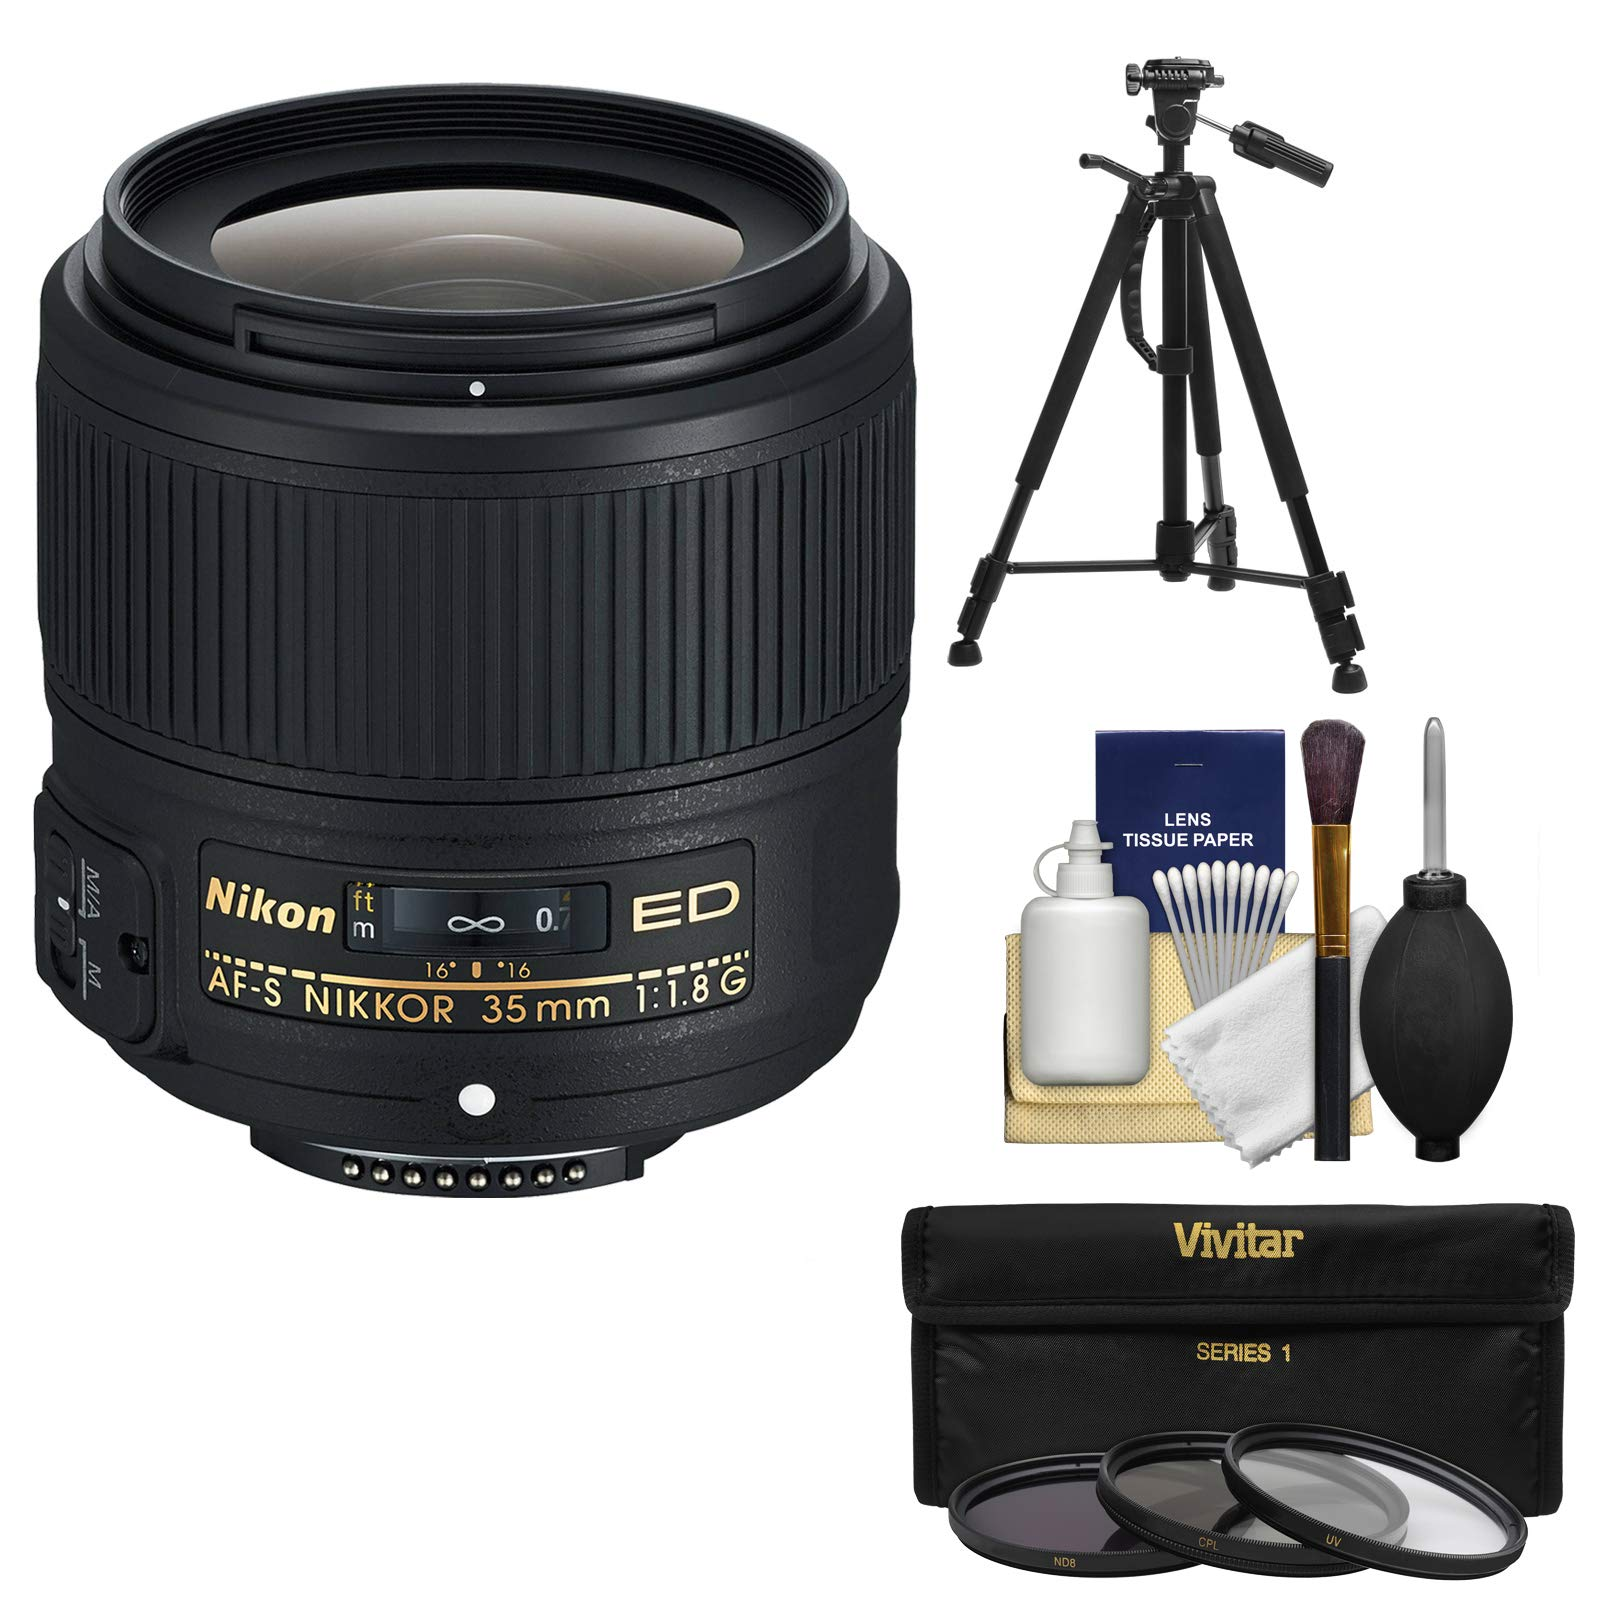 Nikon 35mm f/1.8G AF-S ED Nikkor Lens with 3 UV/CPL/ND8 Filters + Tripod Kit for D3200, D3300, D5300, D5500, D7100, D7200, D750, D810 Cameras by Nikon